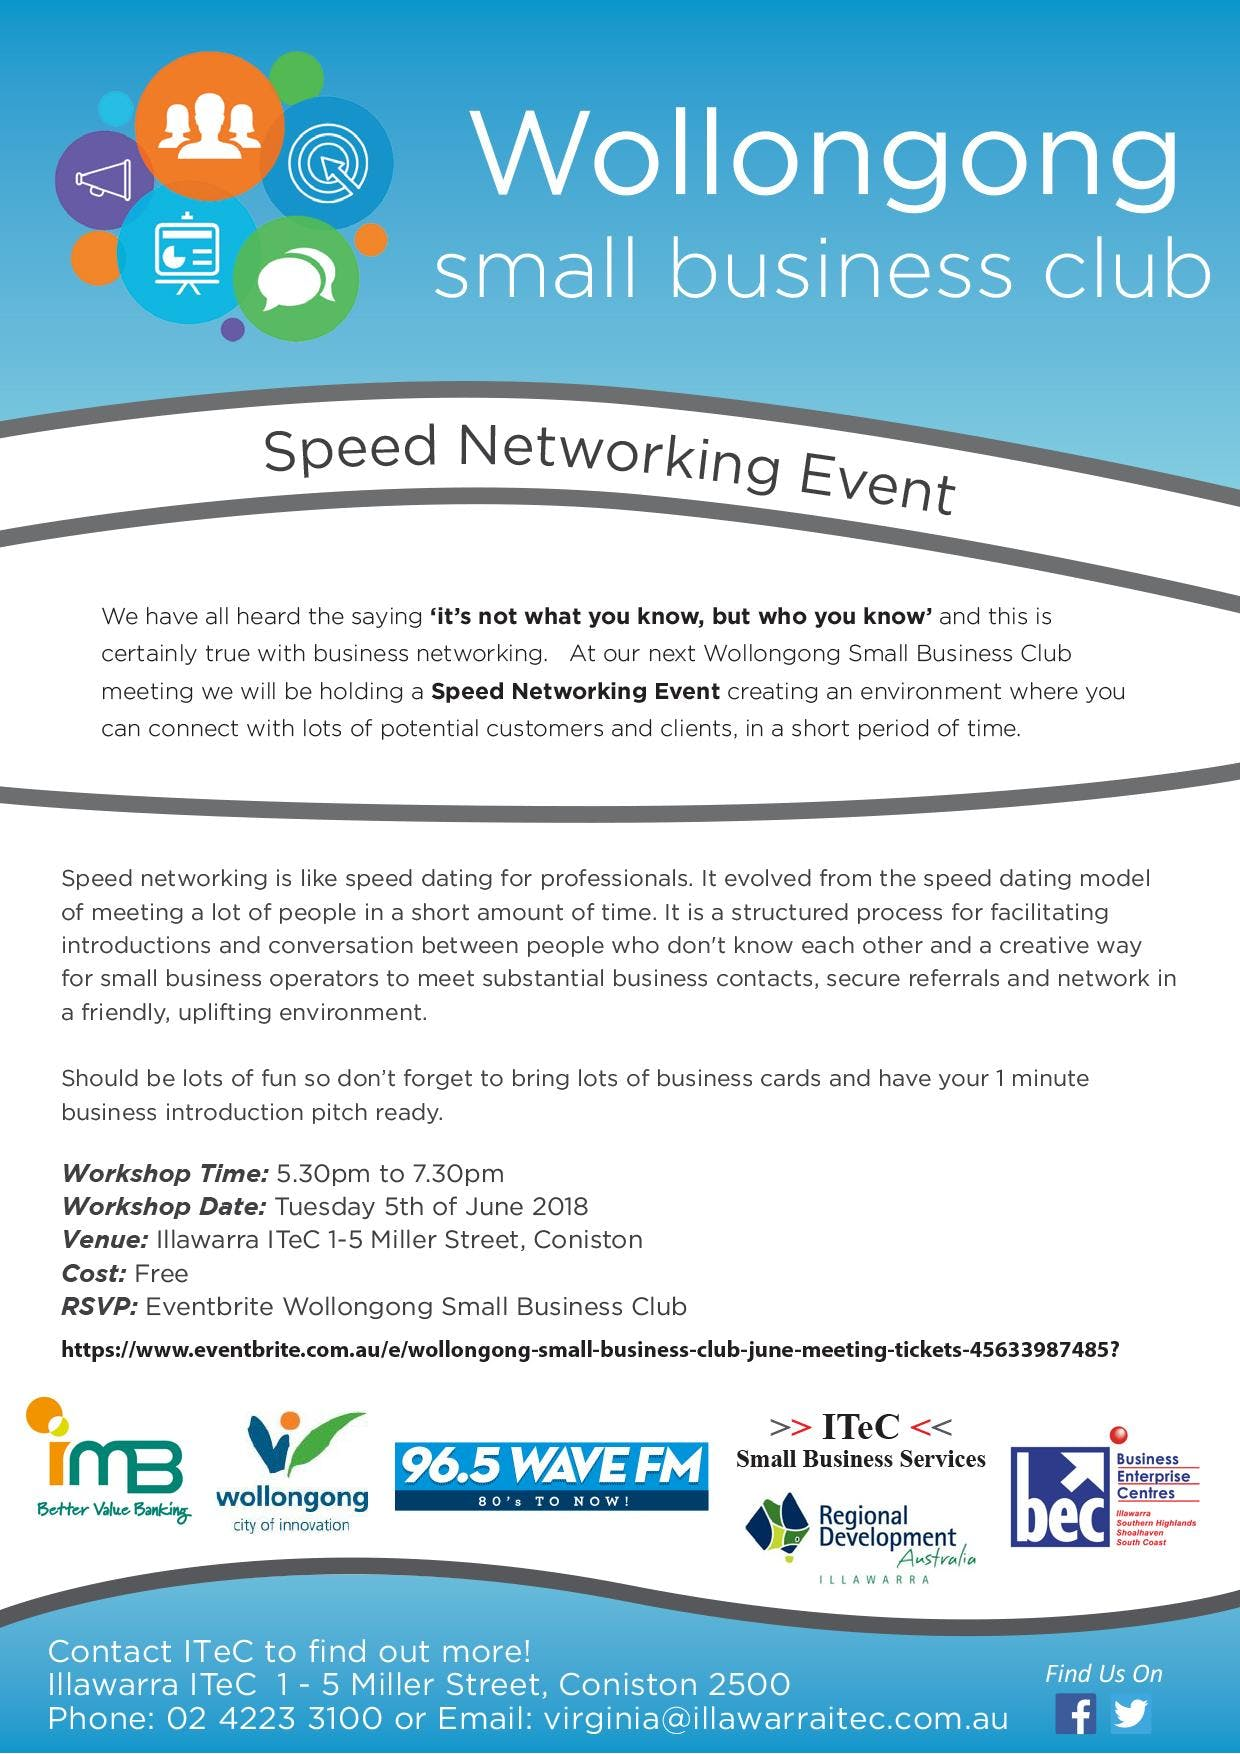 speed dating for small business The source connection is a speed-dating opportunity for small business owners to market their products and services to federal agencies, federal prime contractors or other large businesses.